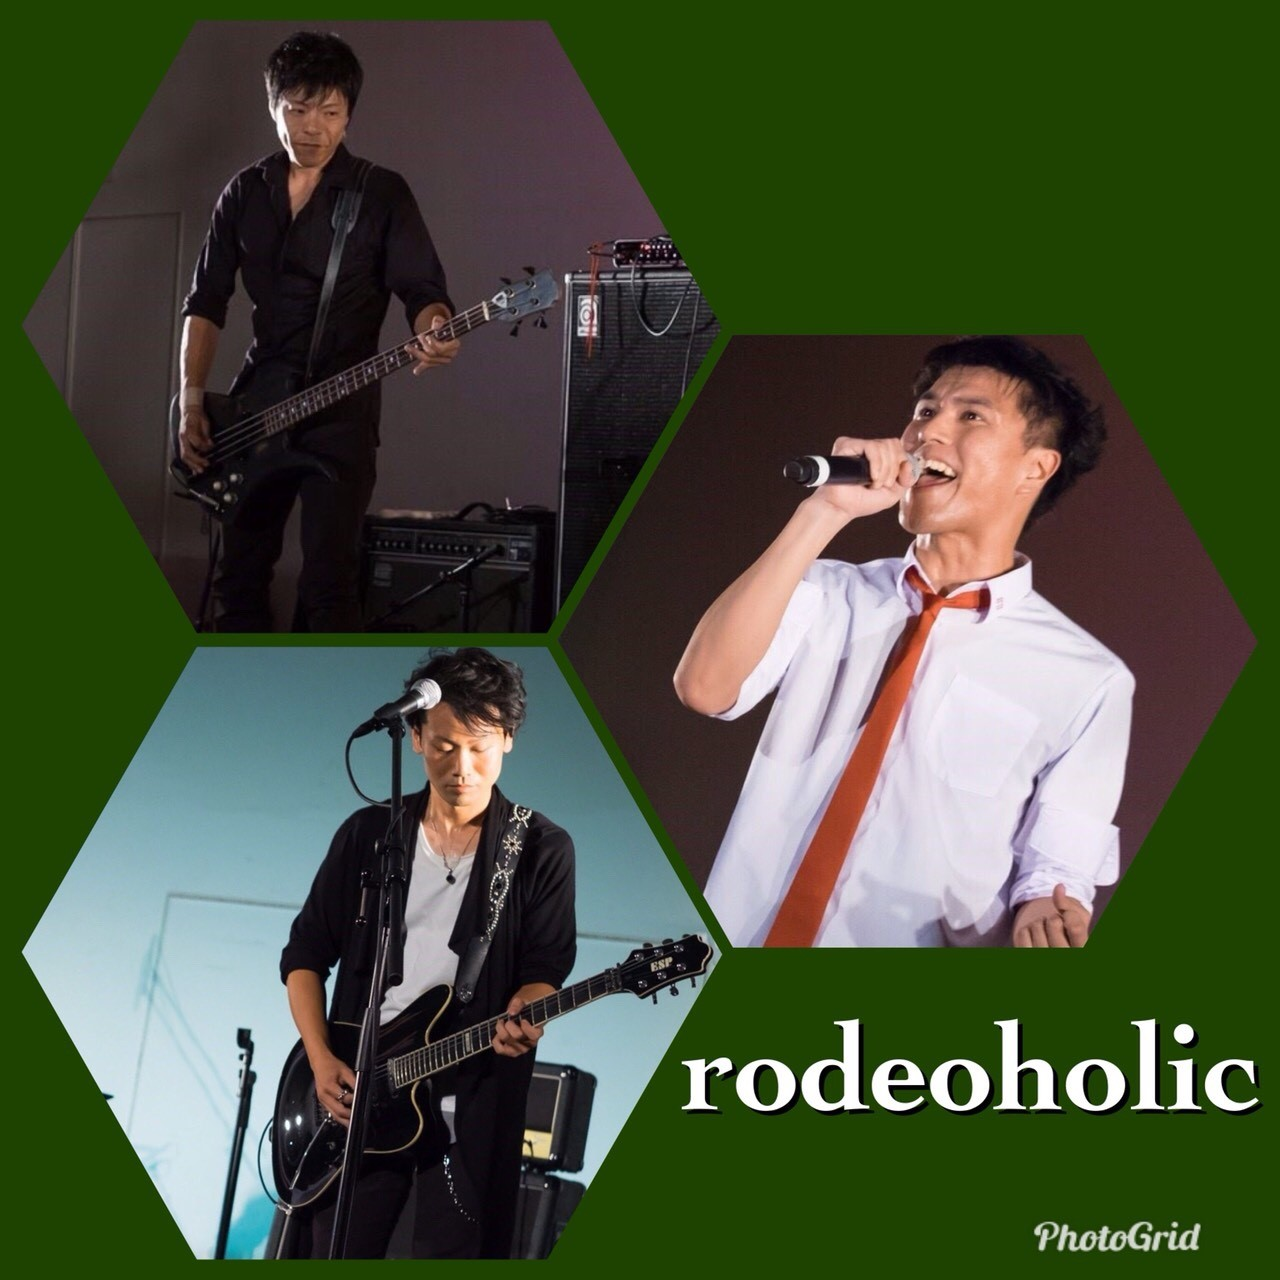 BAND rodeoholic